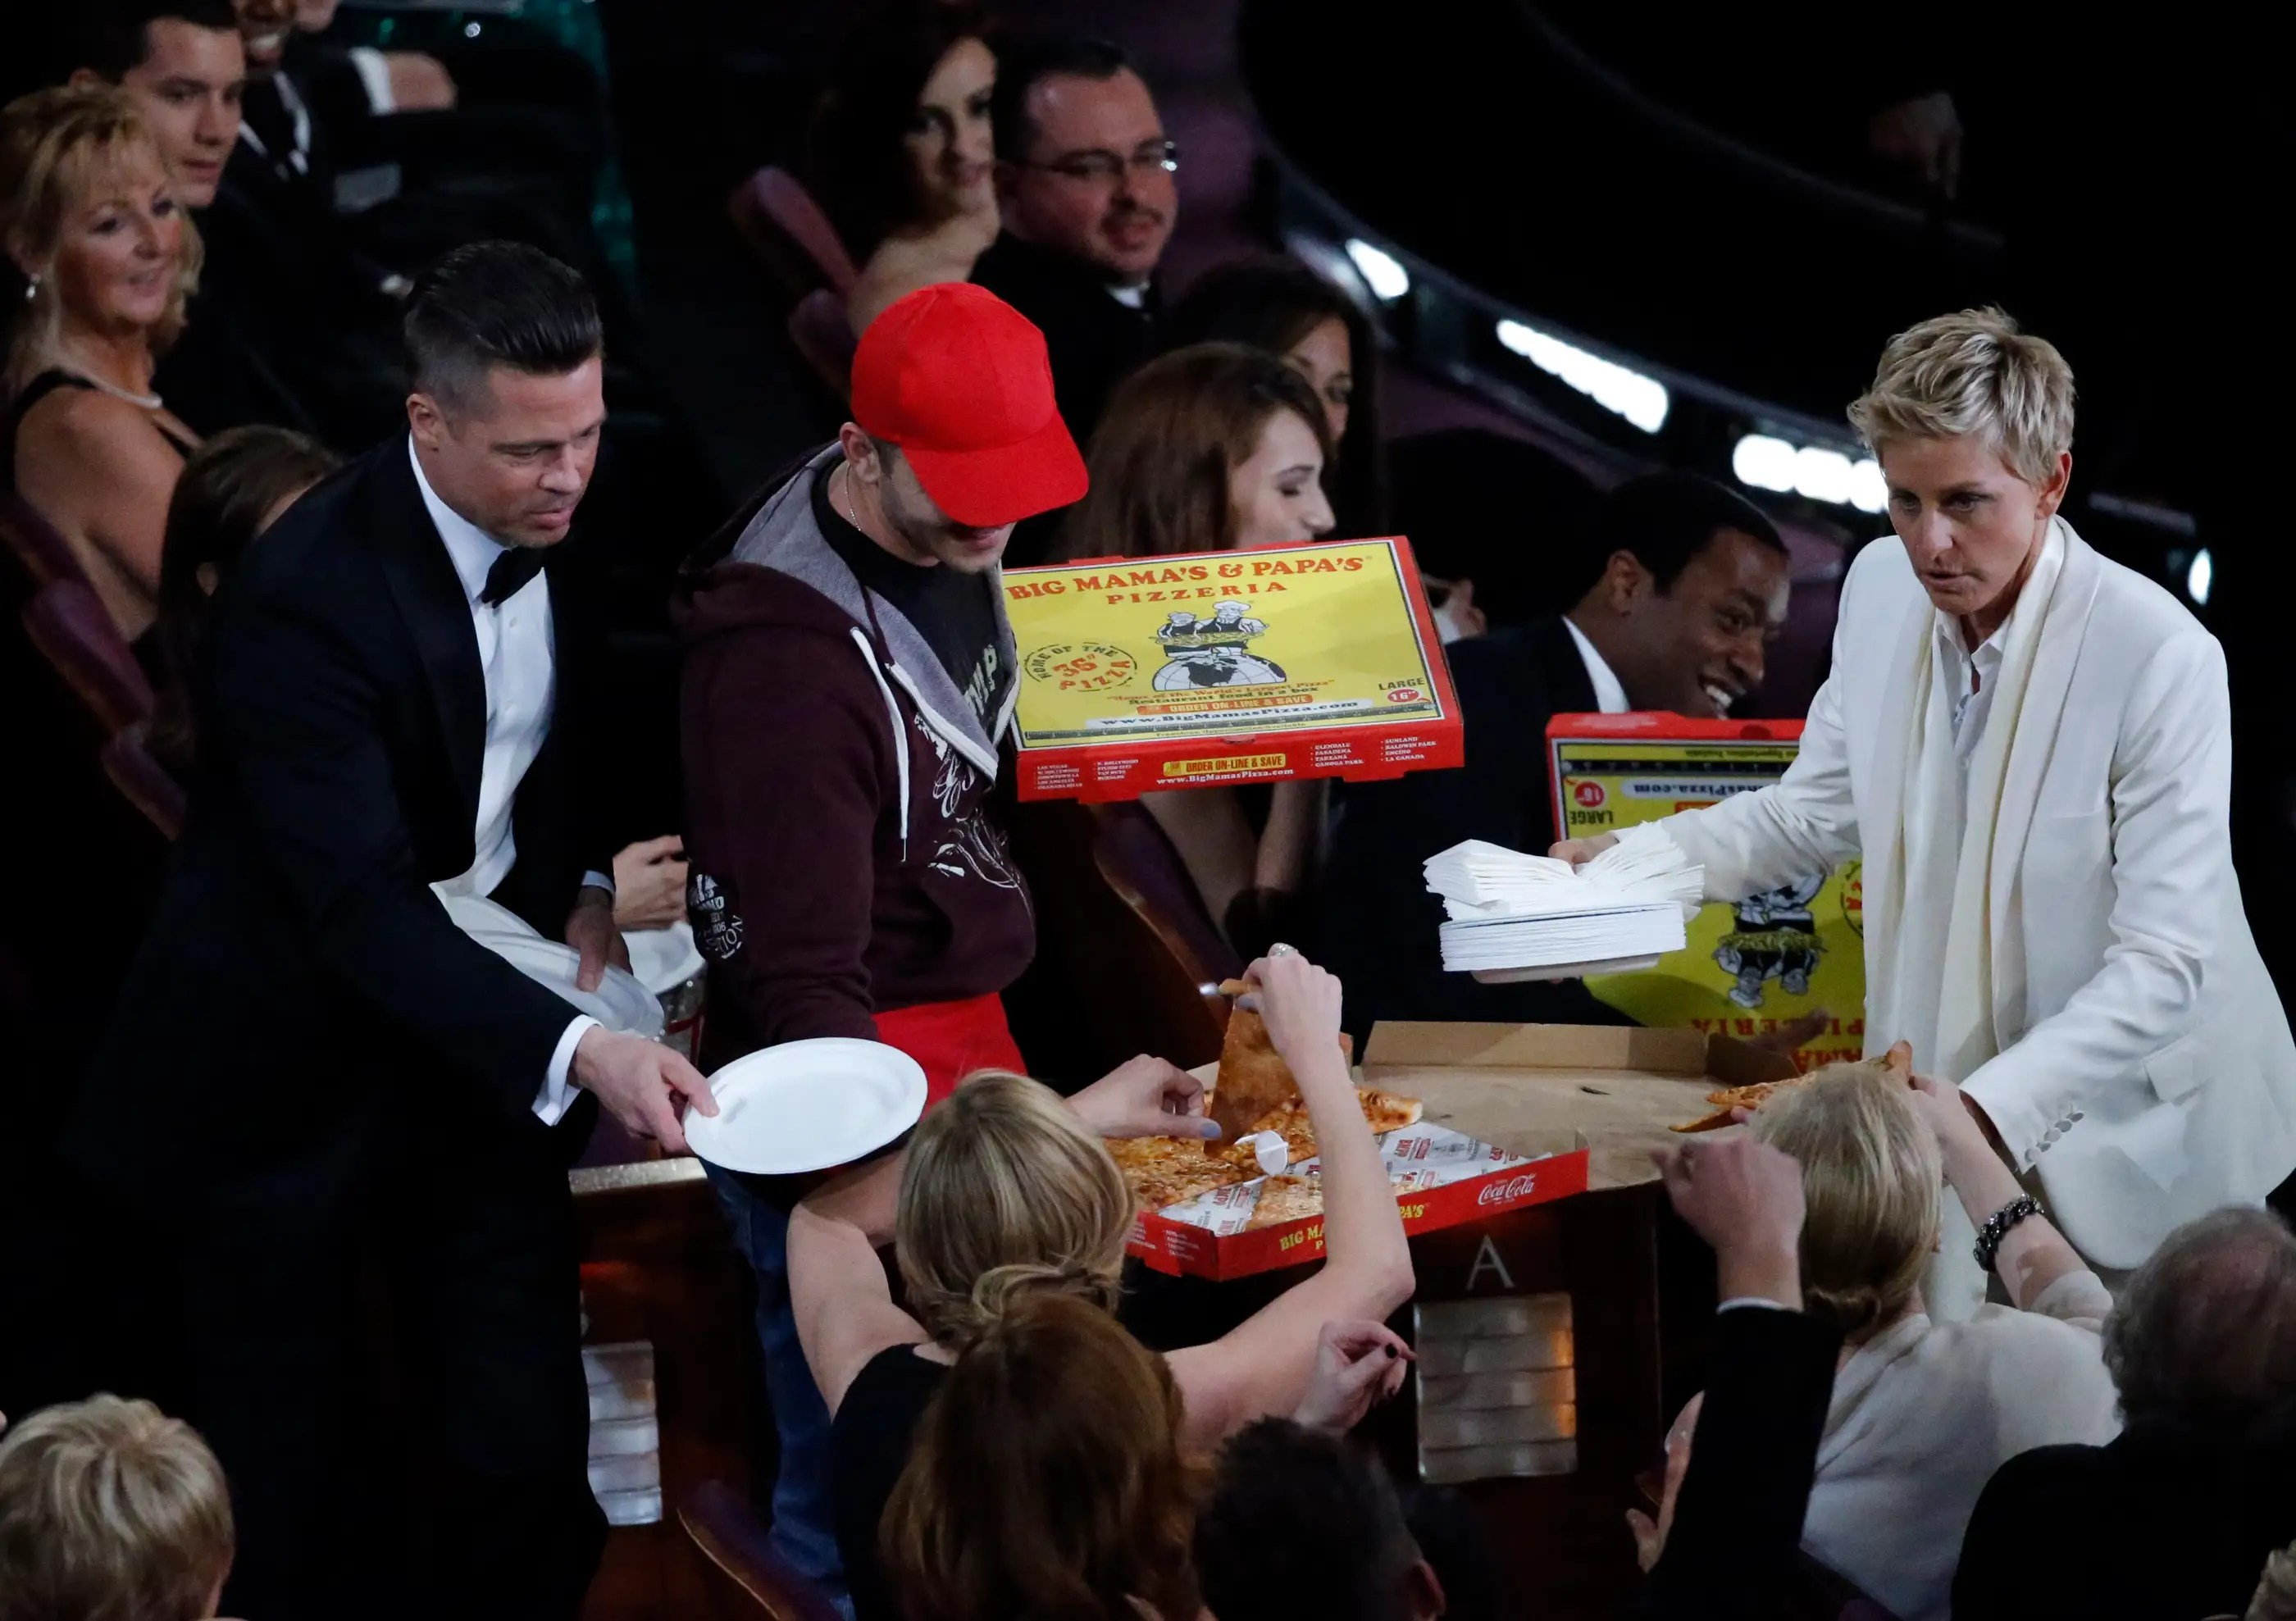 ... or handing out pizza to actors with an actual delivery boy.